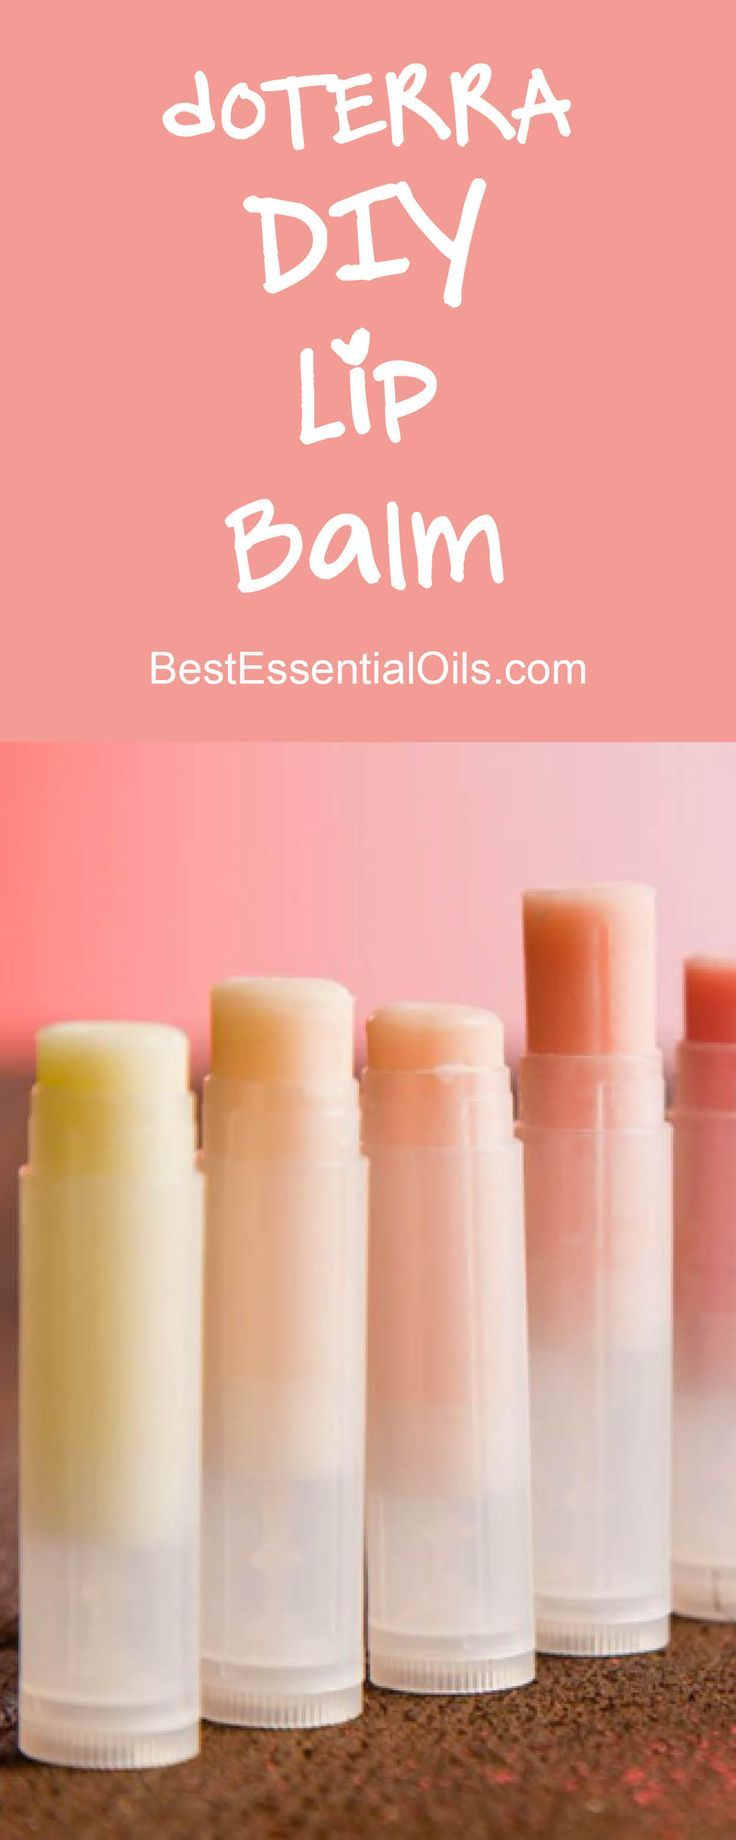 doTERRA Essential Oils DIY Lip Balm